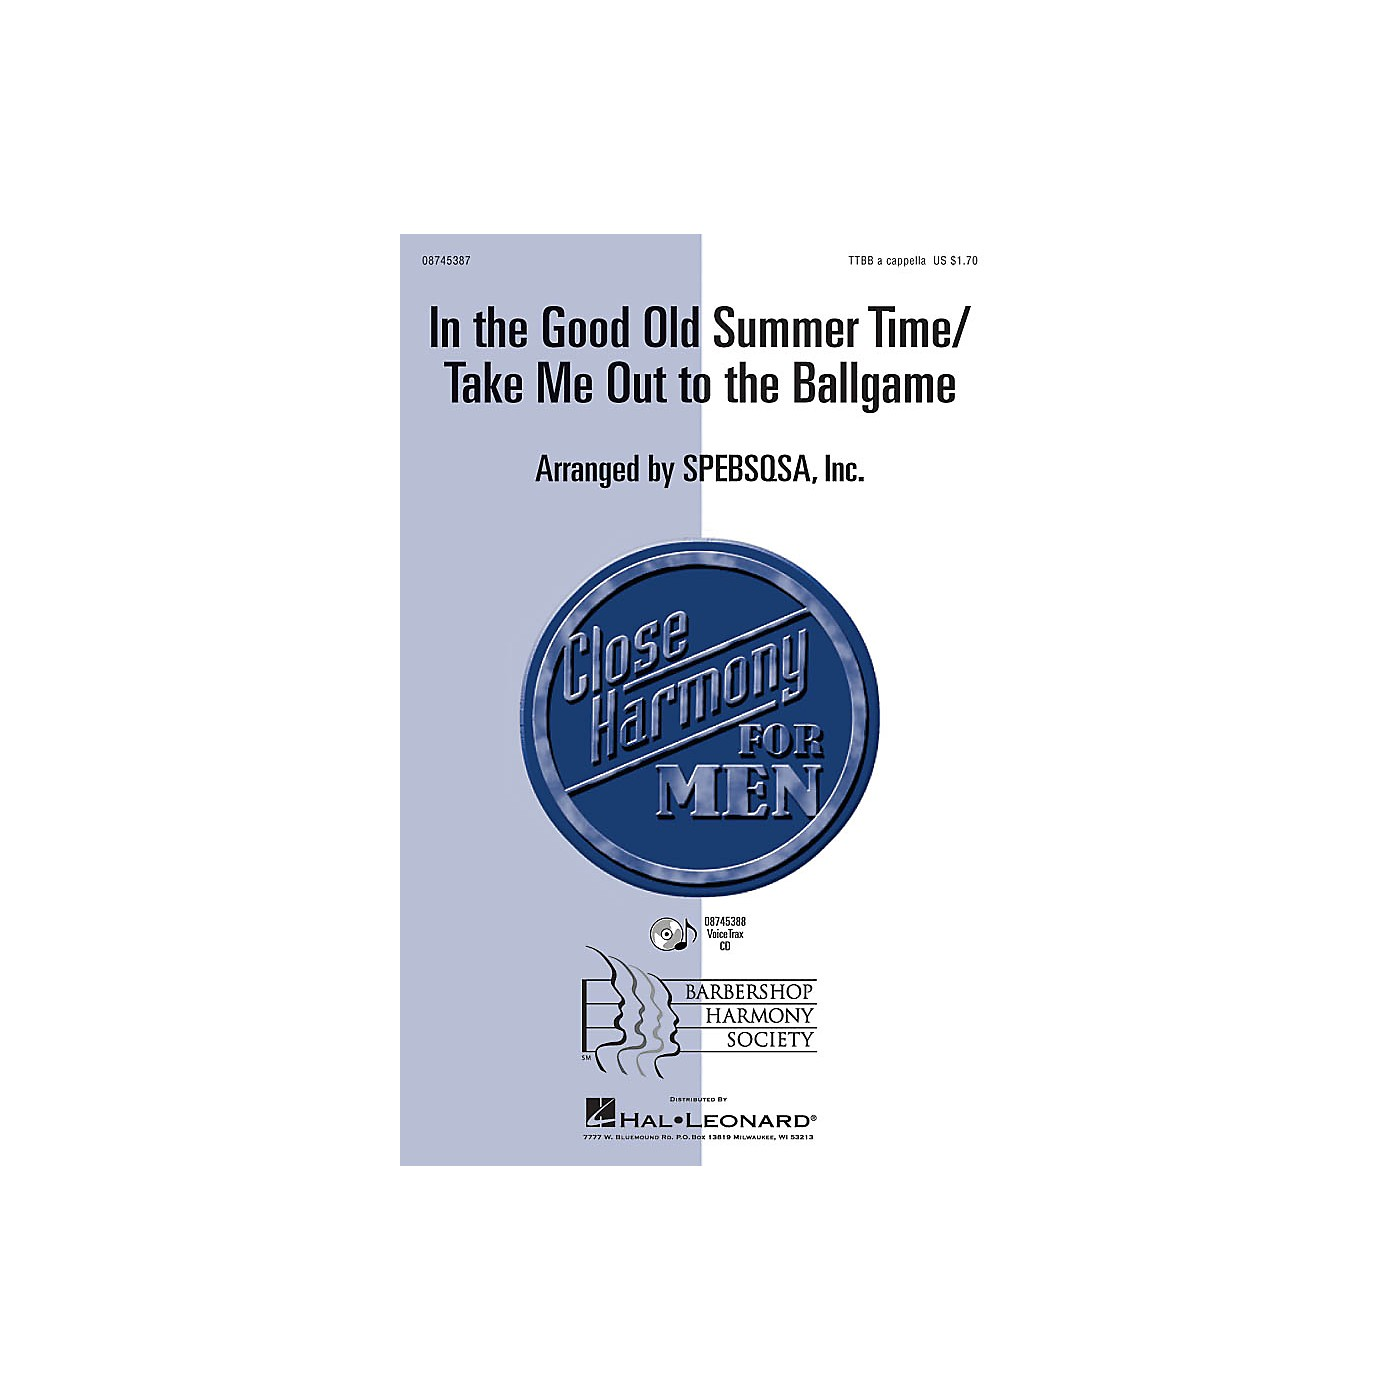 Hal Leonard In the Good Old Summer Time/Take Me Out to the Ballgame VoiceTrax CD Arranged by SPEBSQSA, Inc. thumbnail